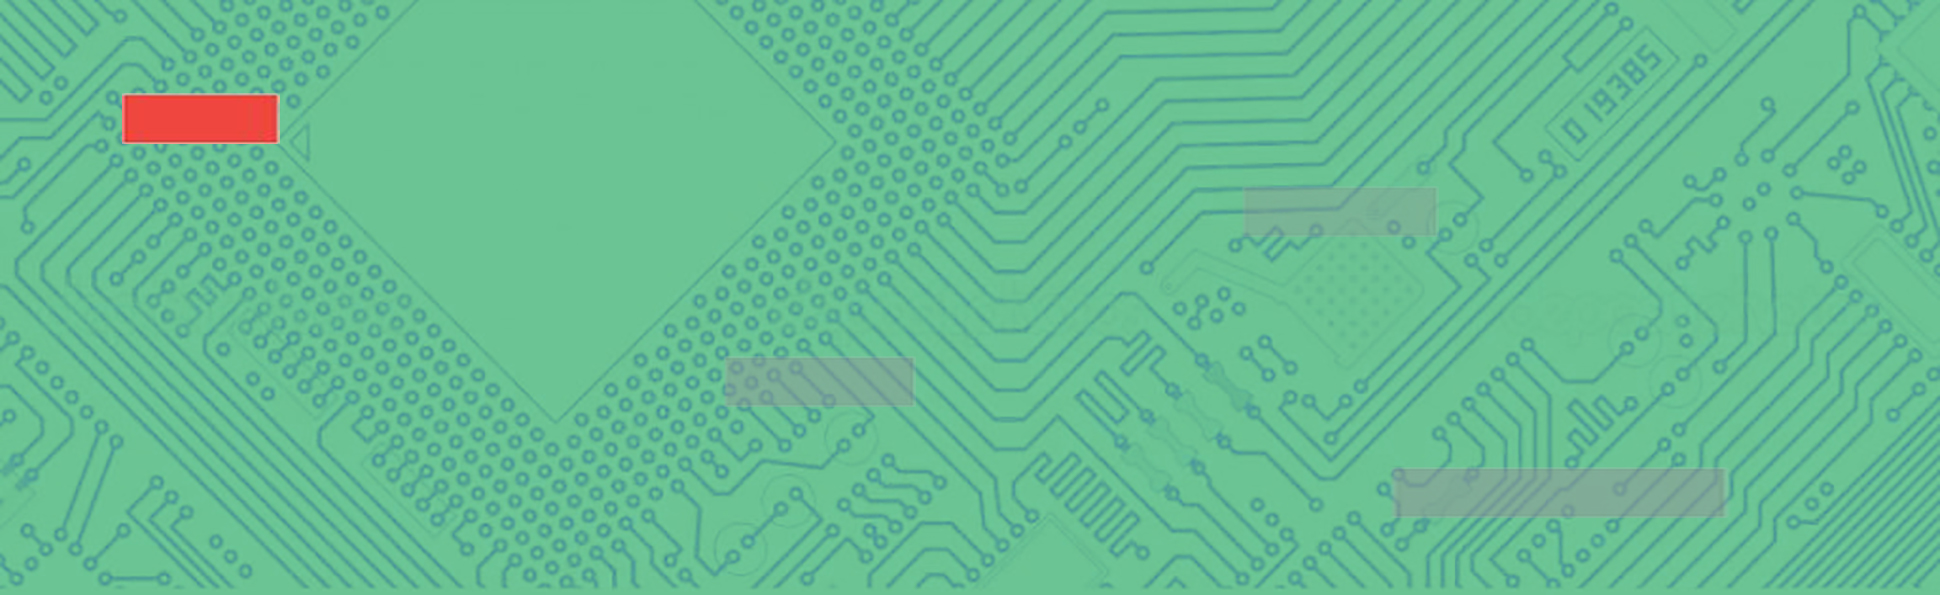 Green circuit board with red block